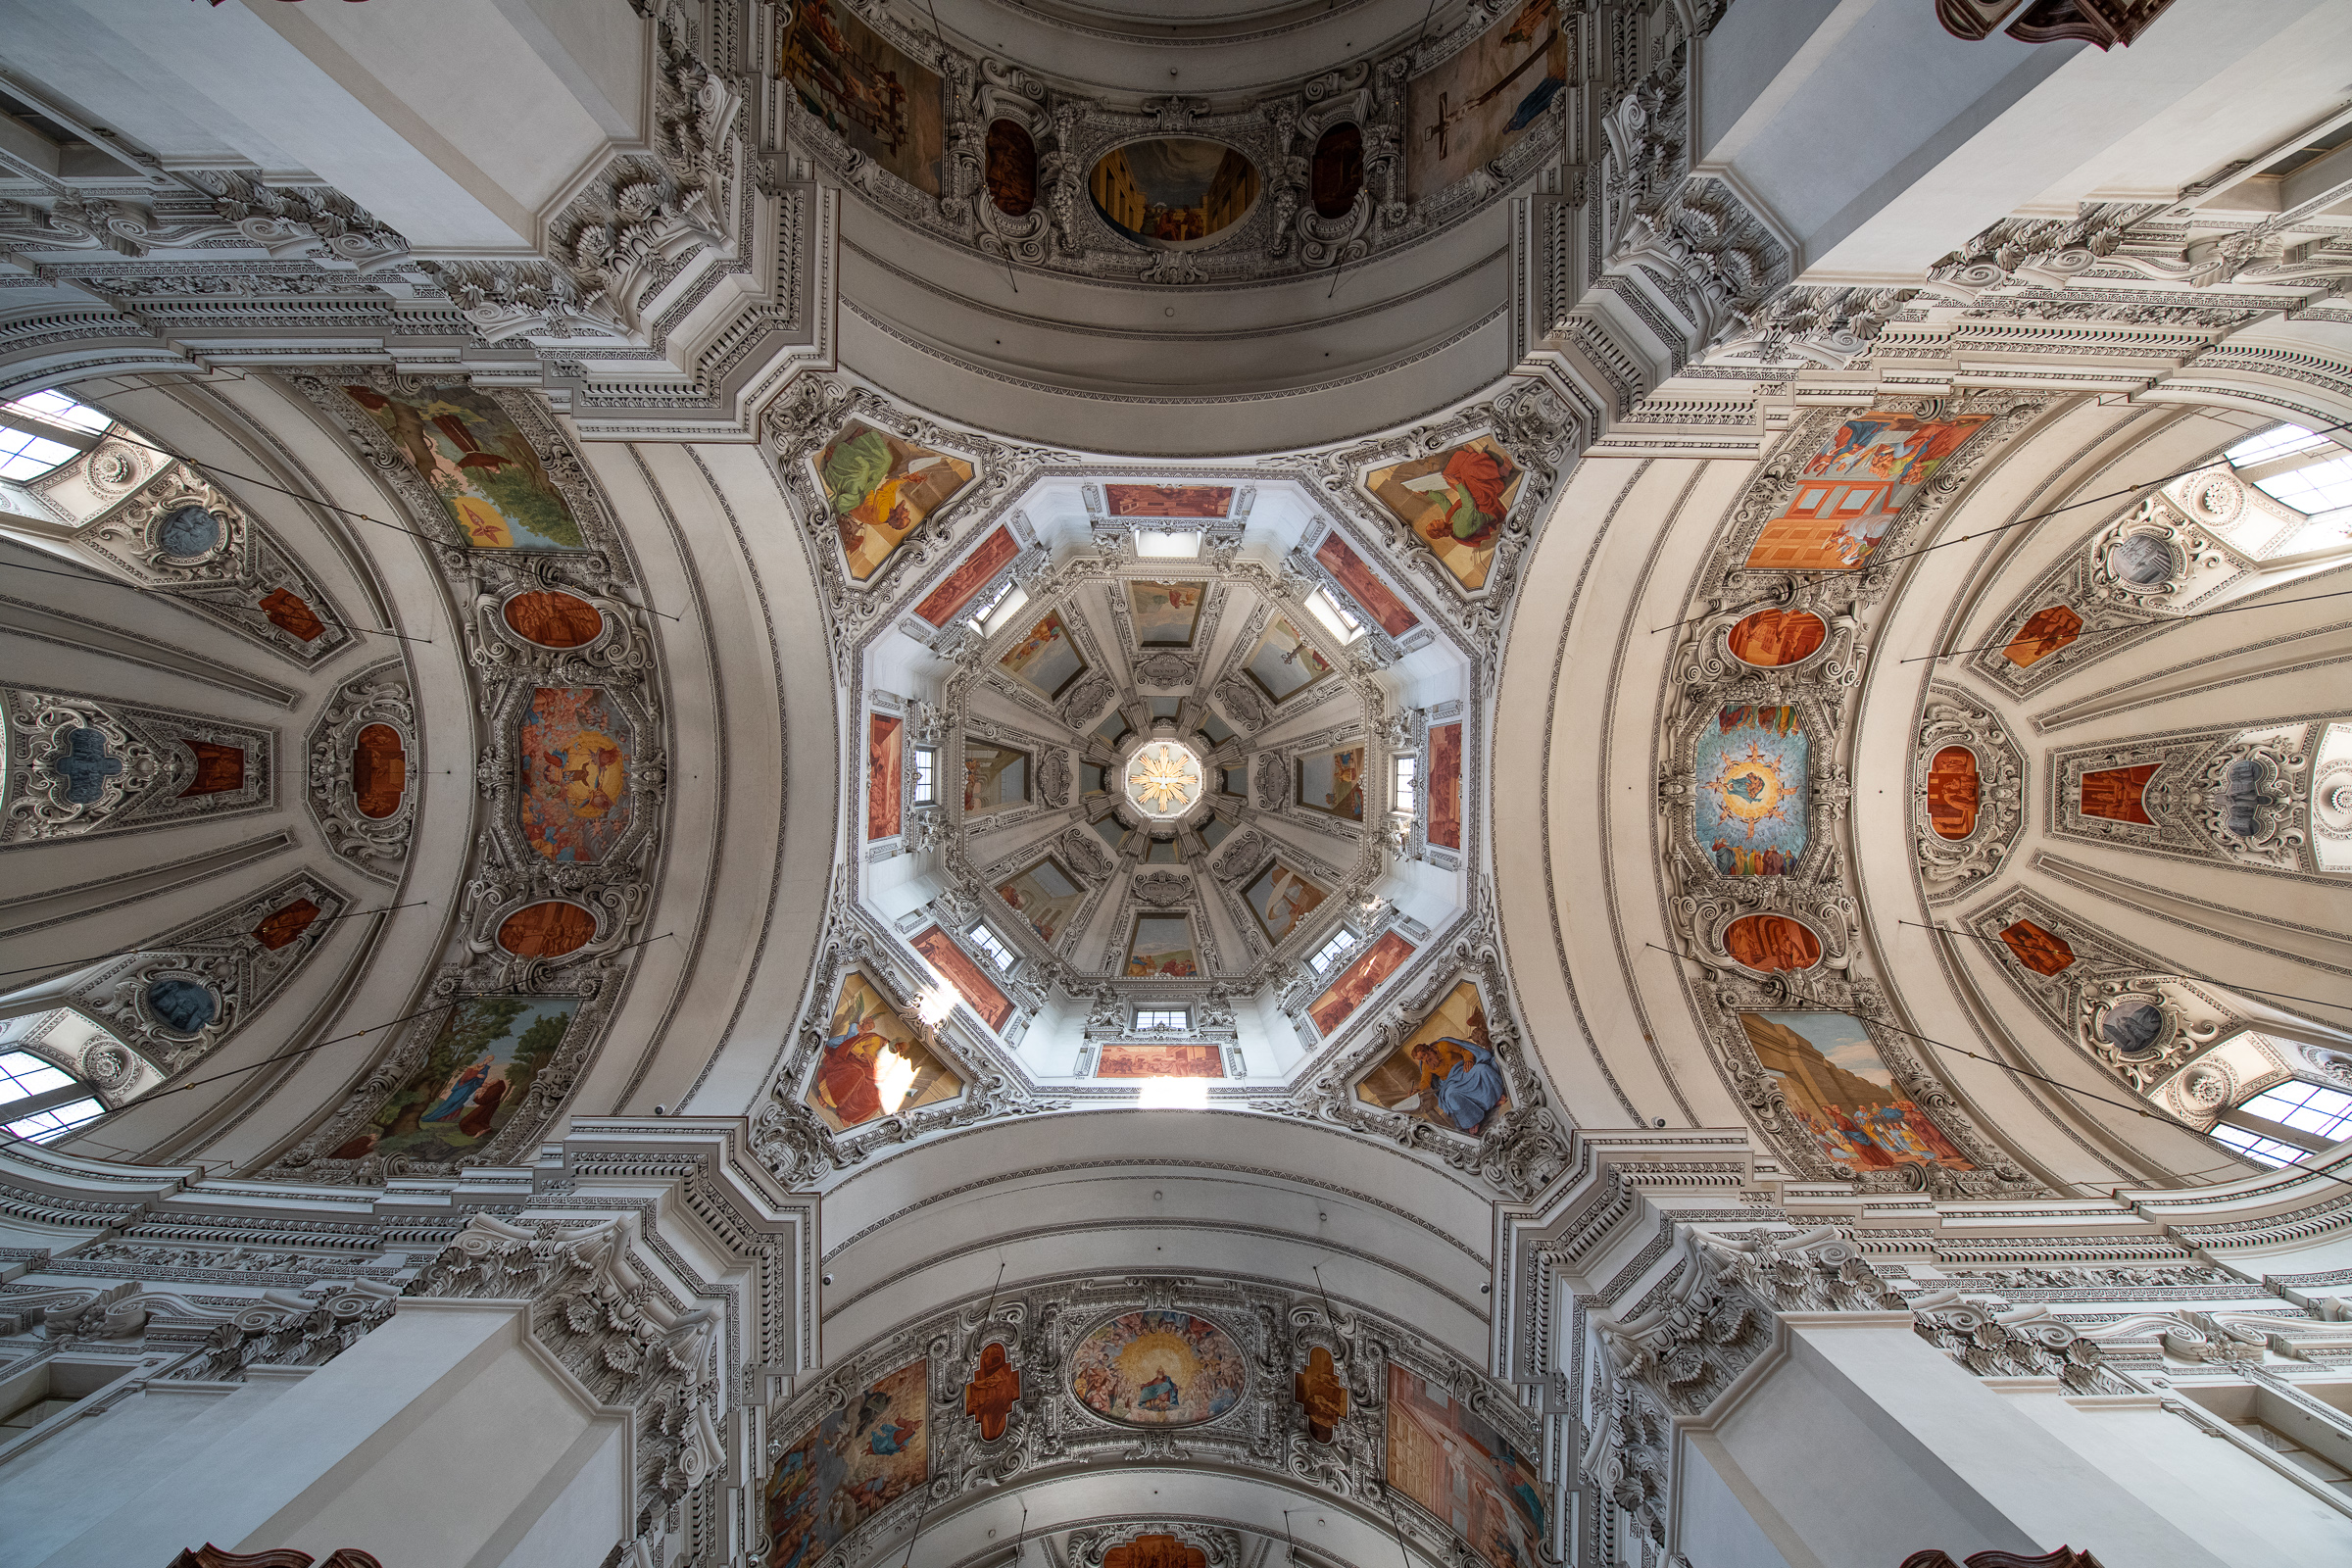 The ceiling of Salzburg Cathedral